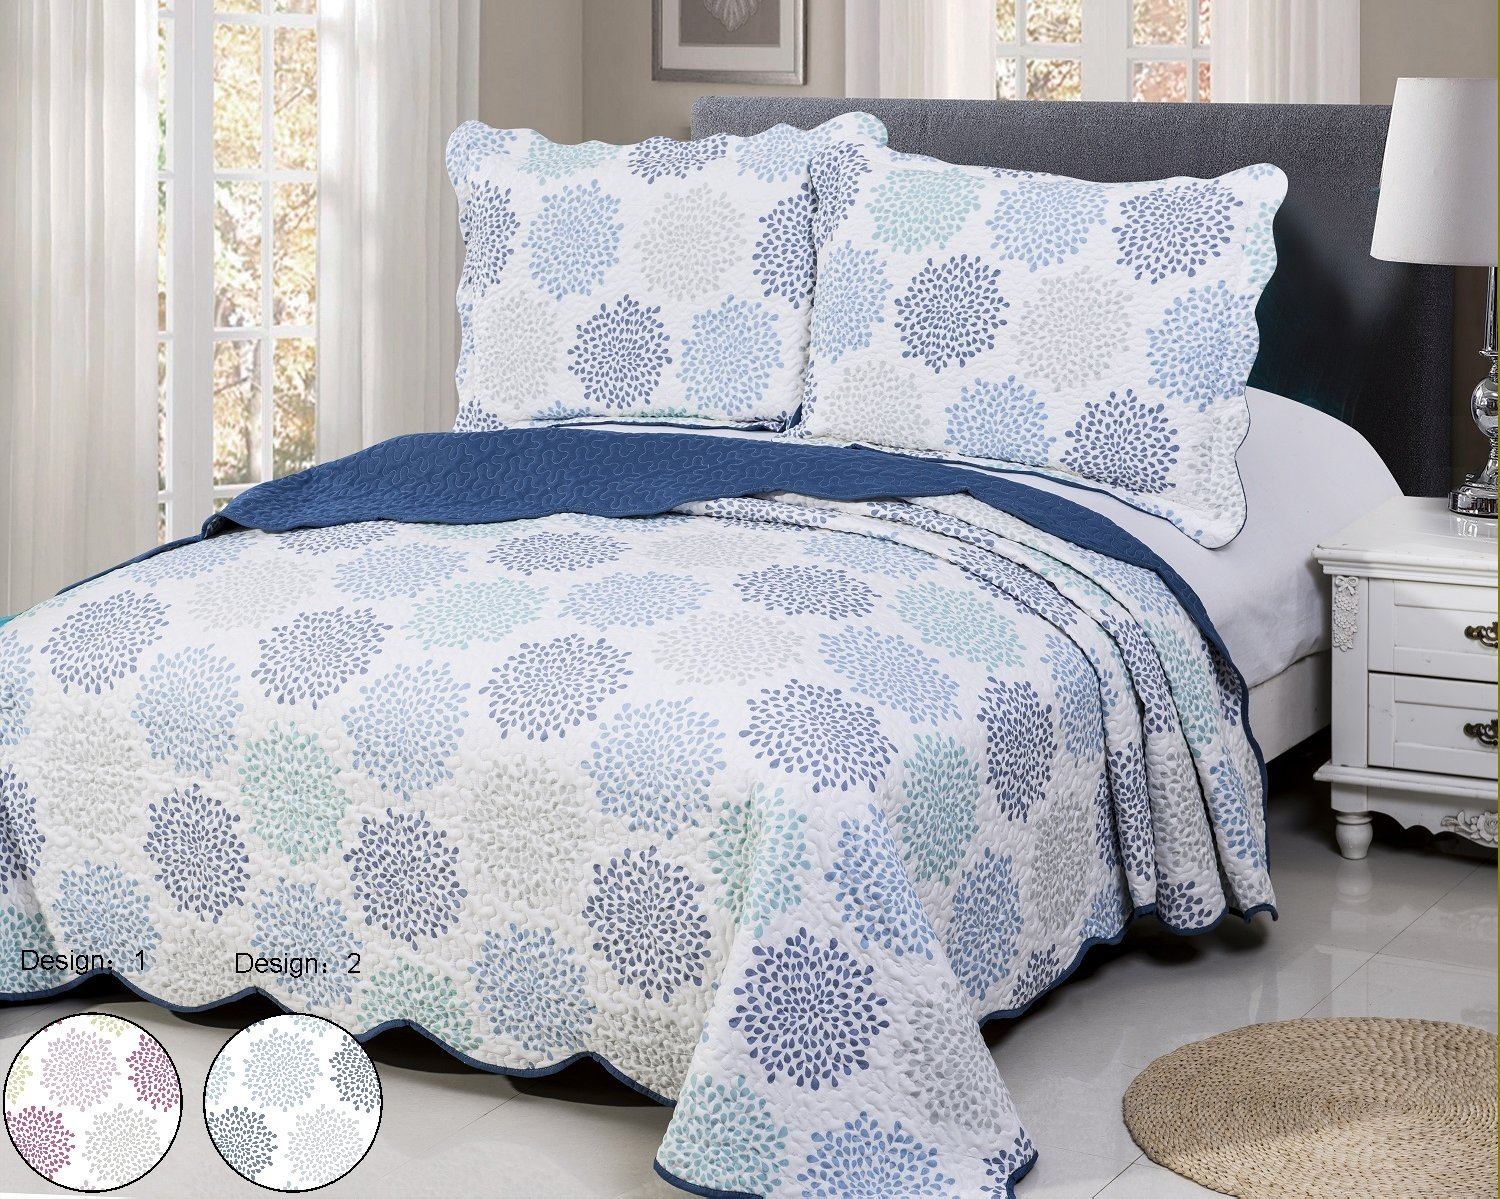 3-Piece Bedspread Soft All-Season Luxury Microfiber Reversible Bedspread and Coverlet